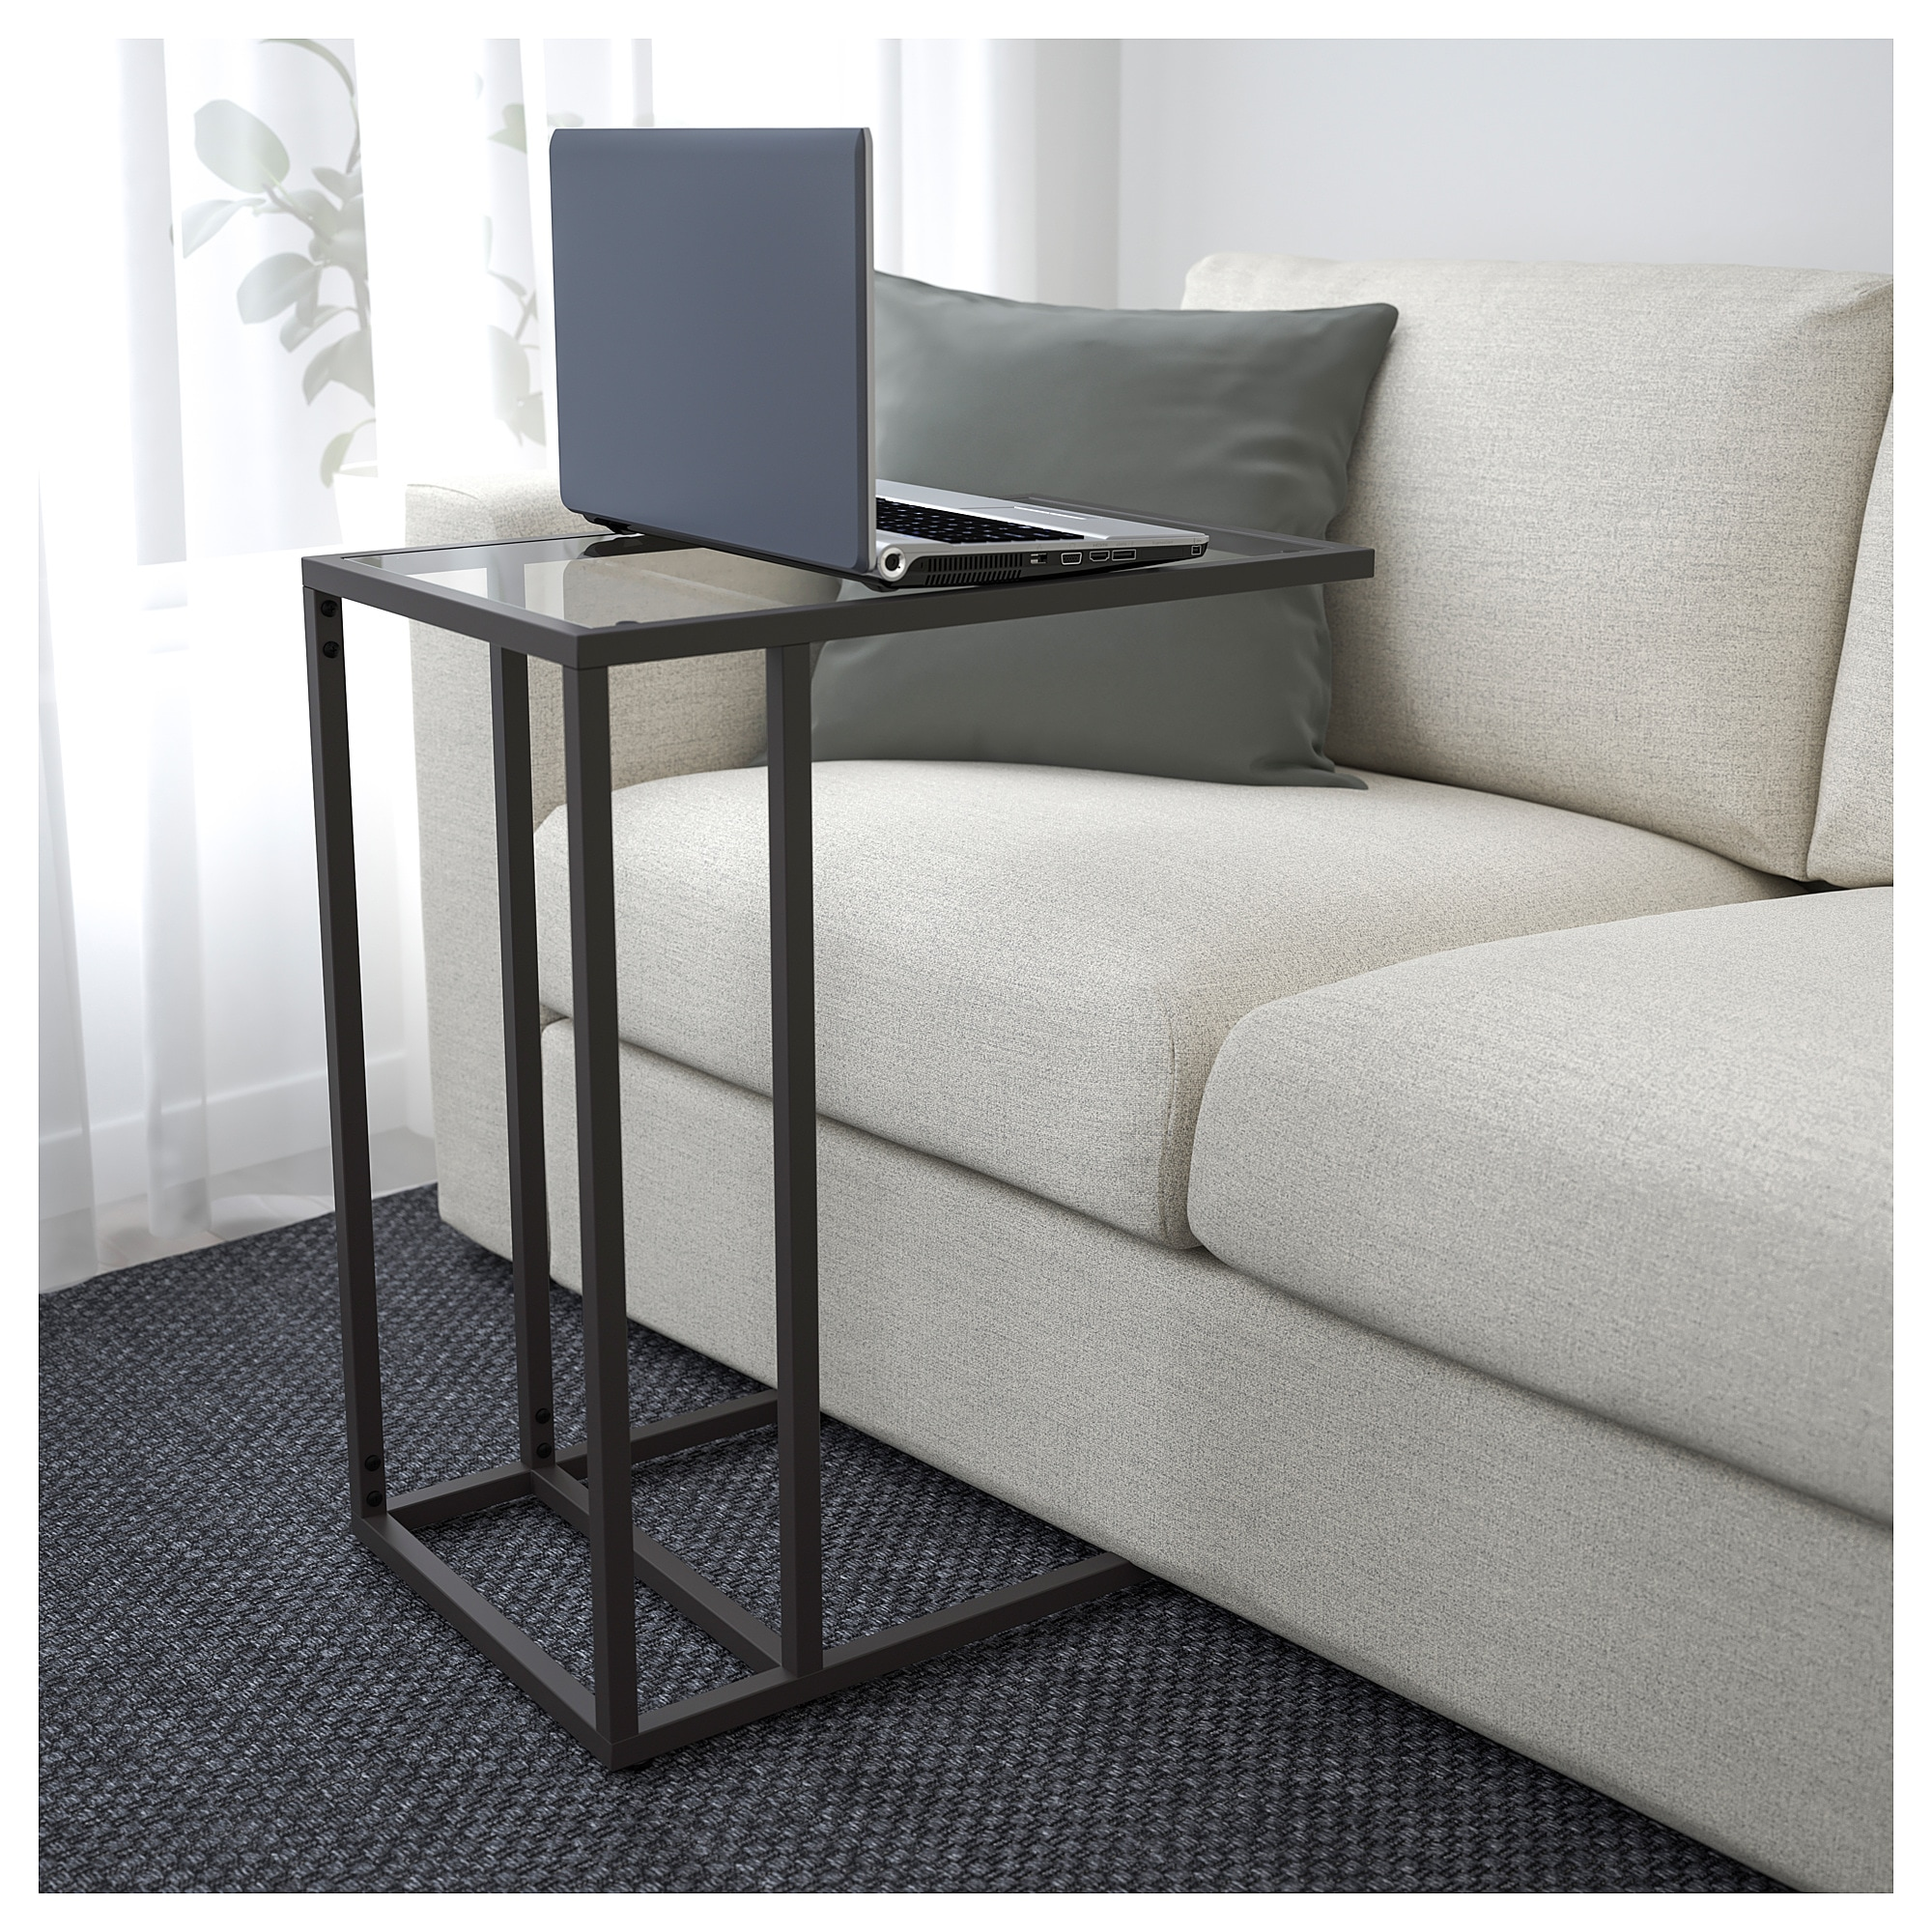 VITTSJ– Laptop stand black brown glass IKEA